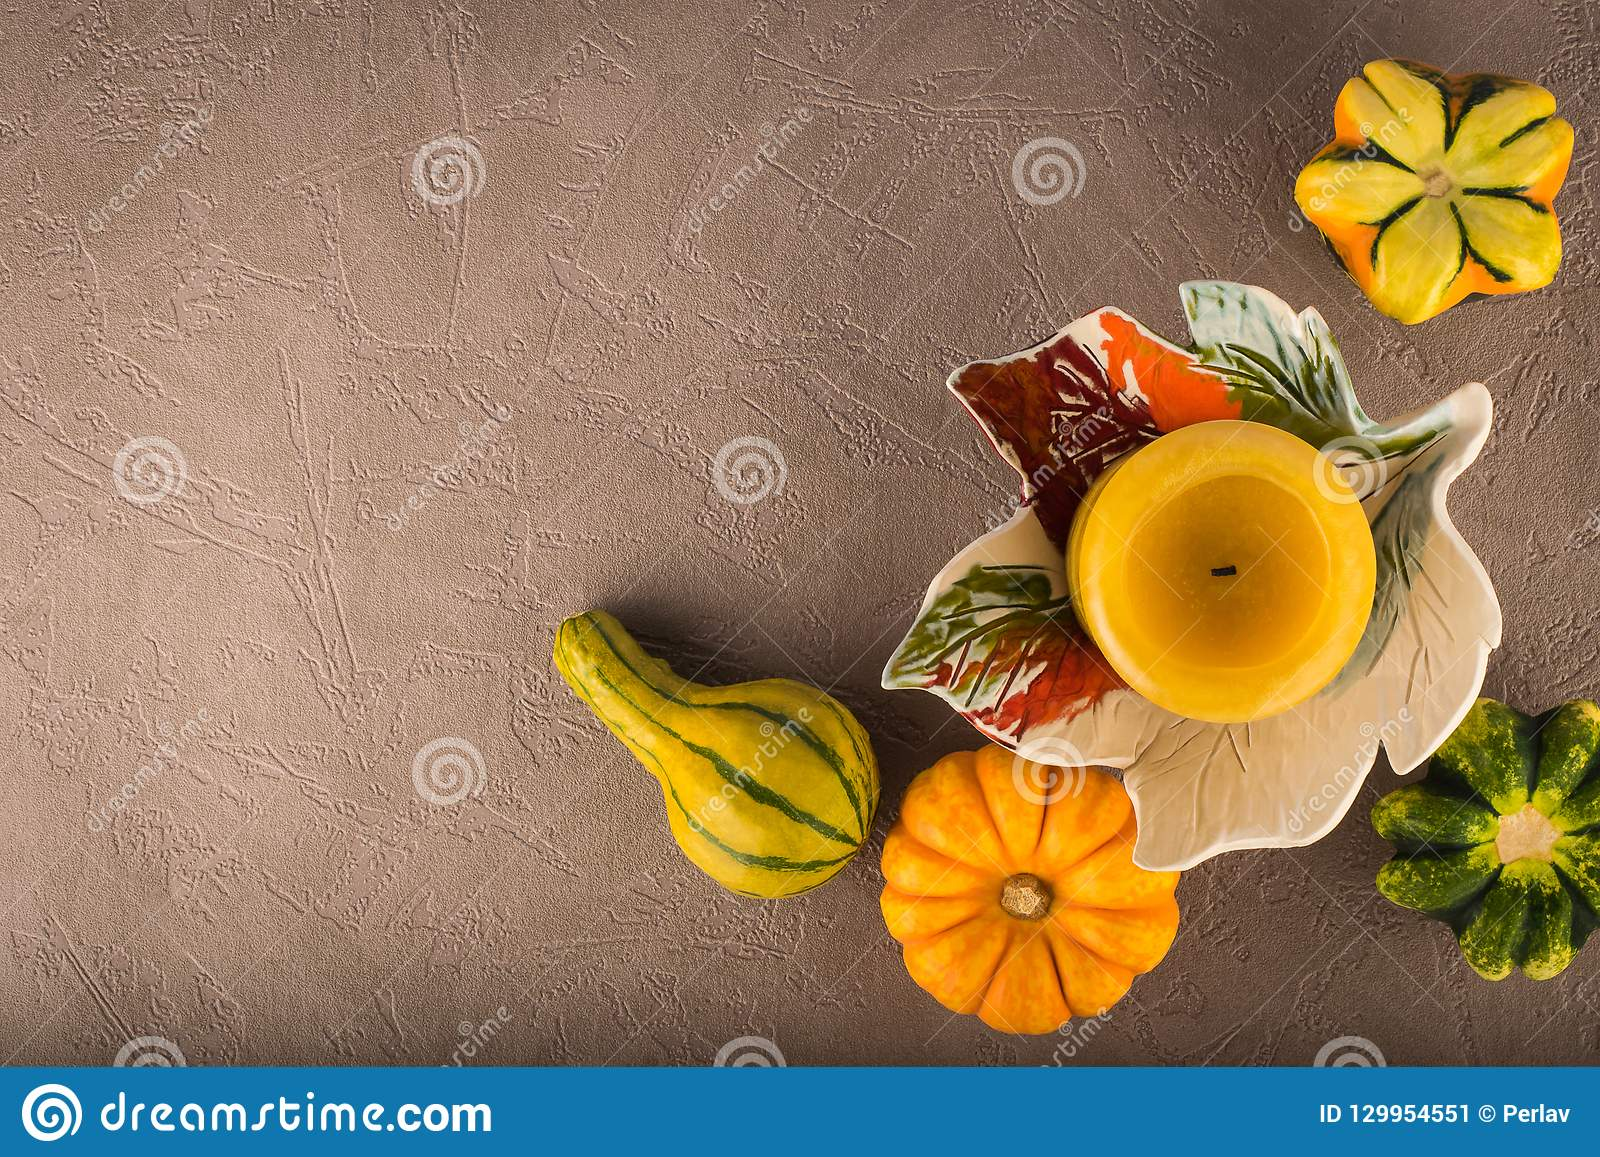 Autumn composition of decorative pumpkins and candle